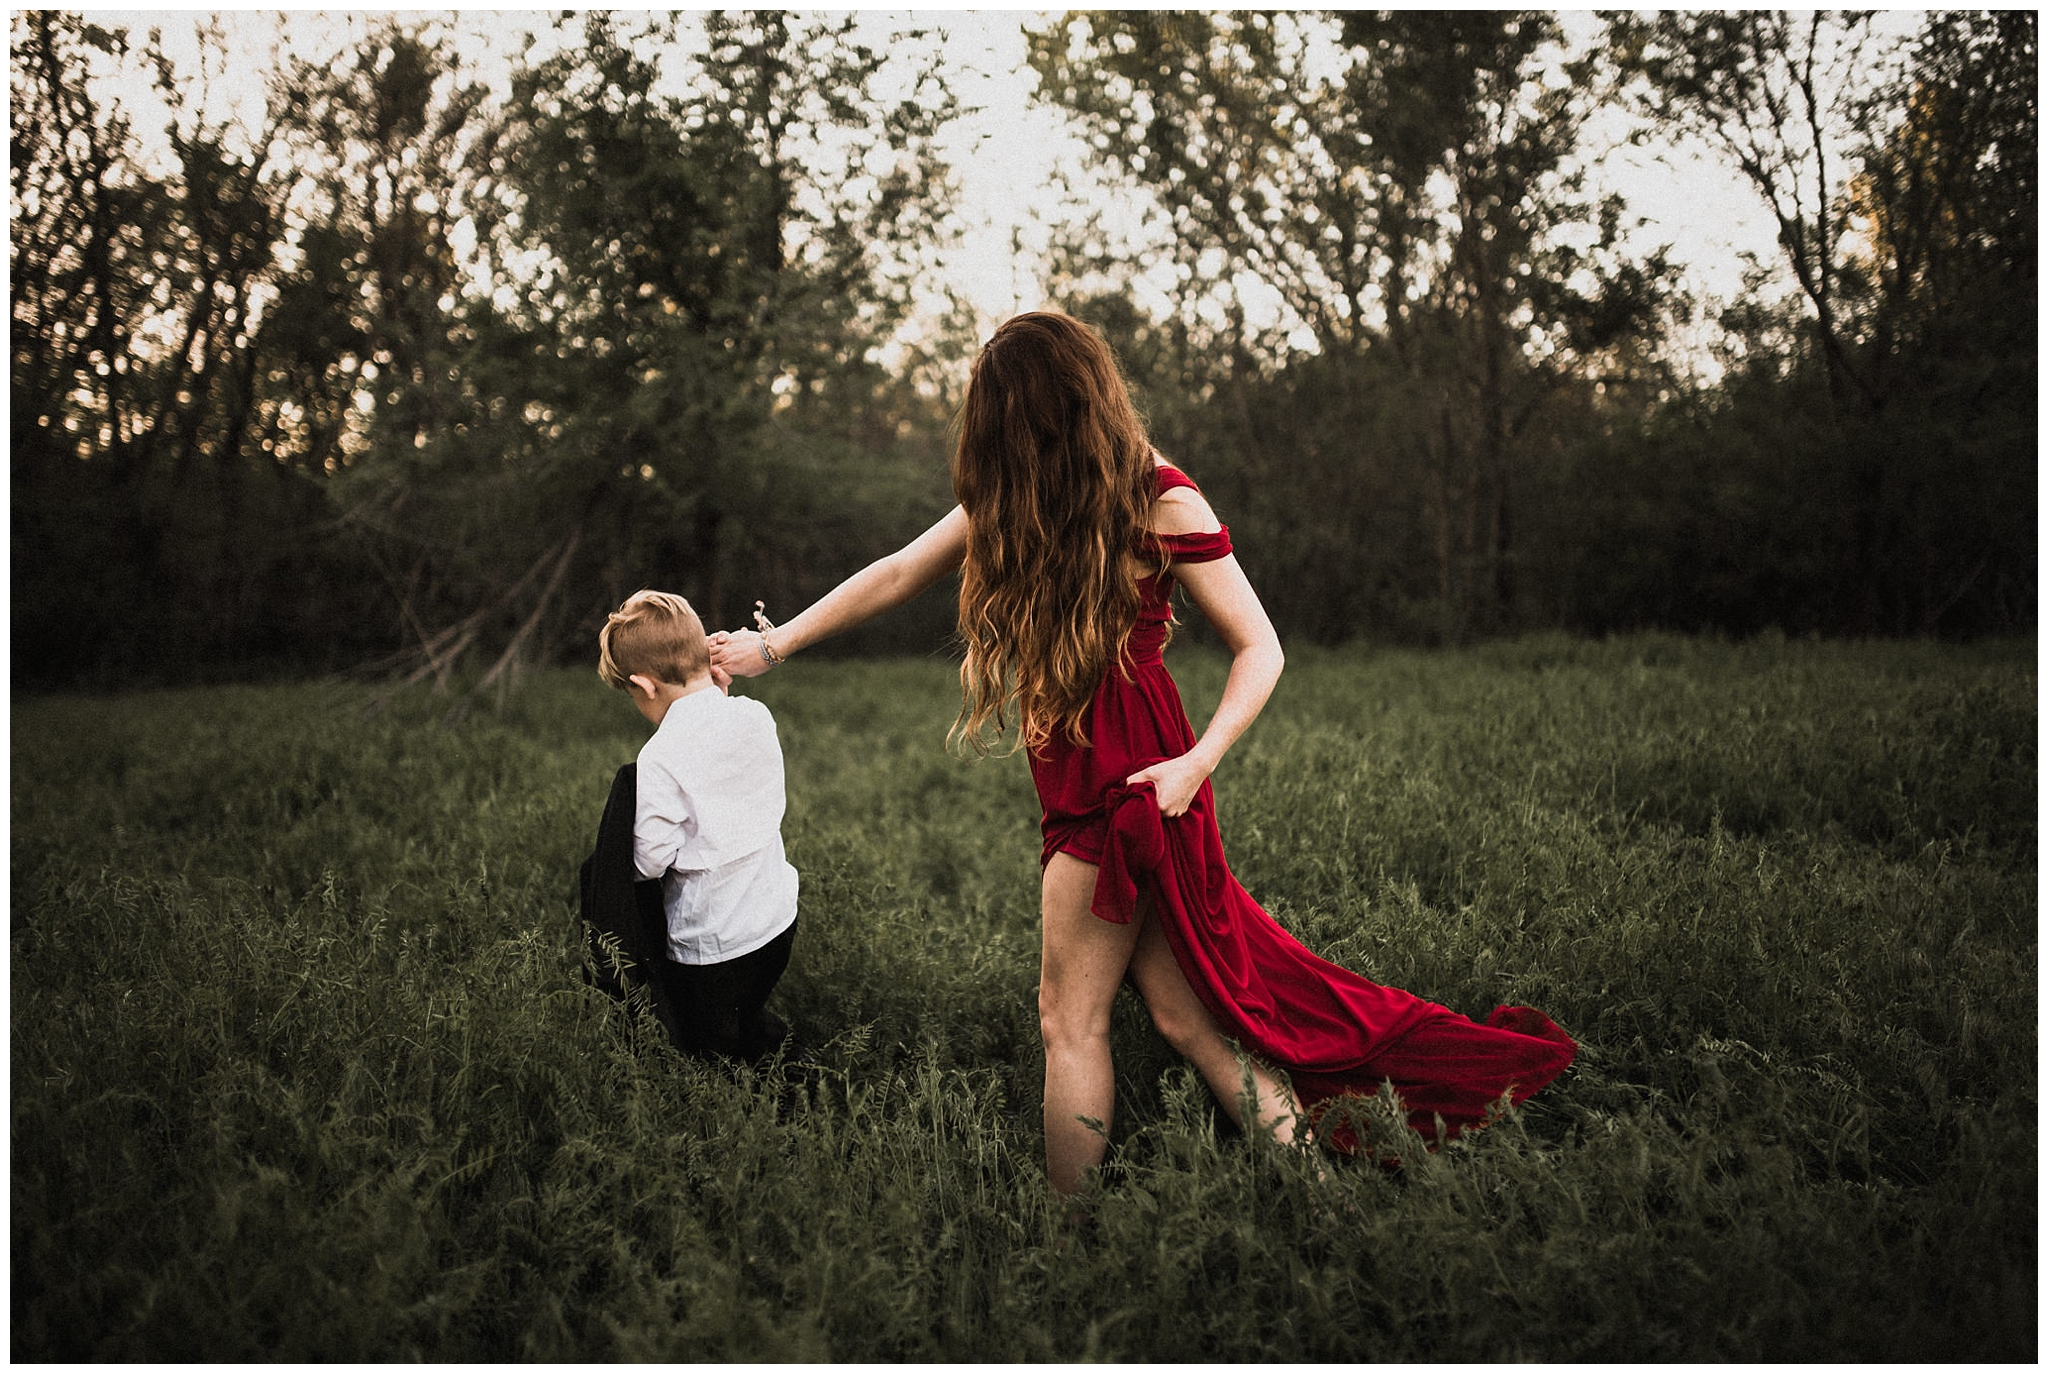 twyla jones photography | south florida family photographer | mother son session in a meadow-20160420-_TDJ4177.jpg